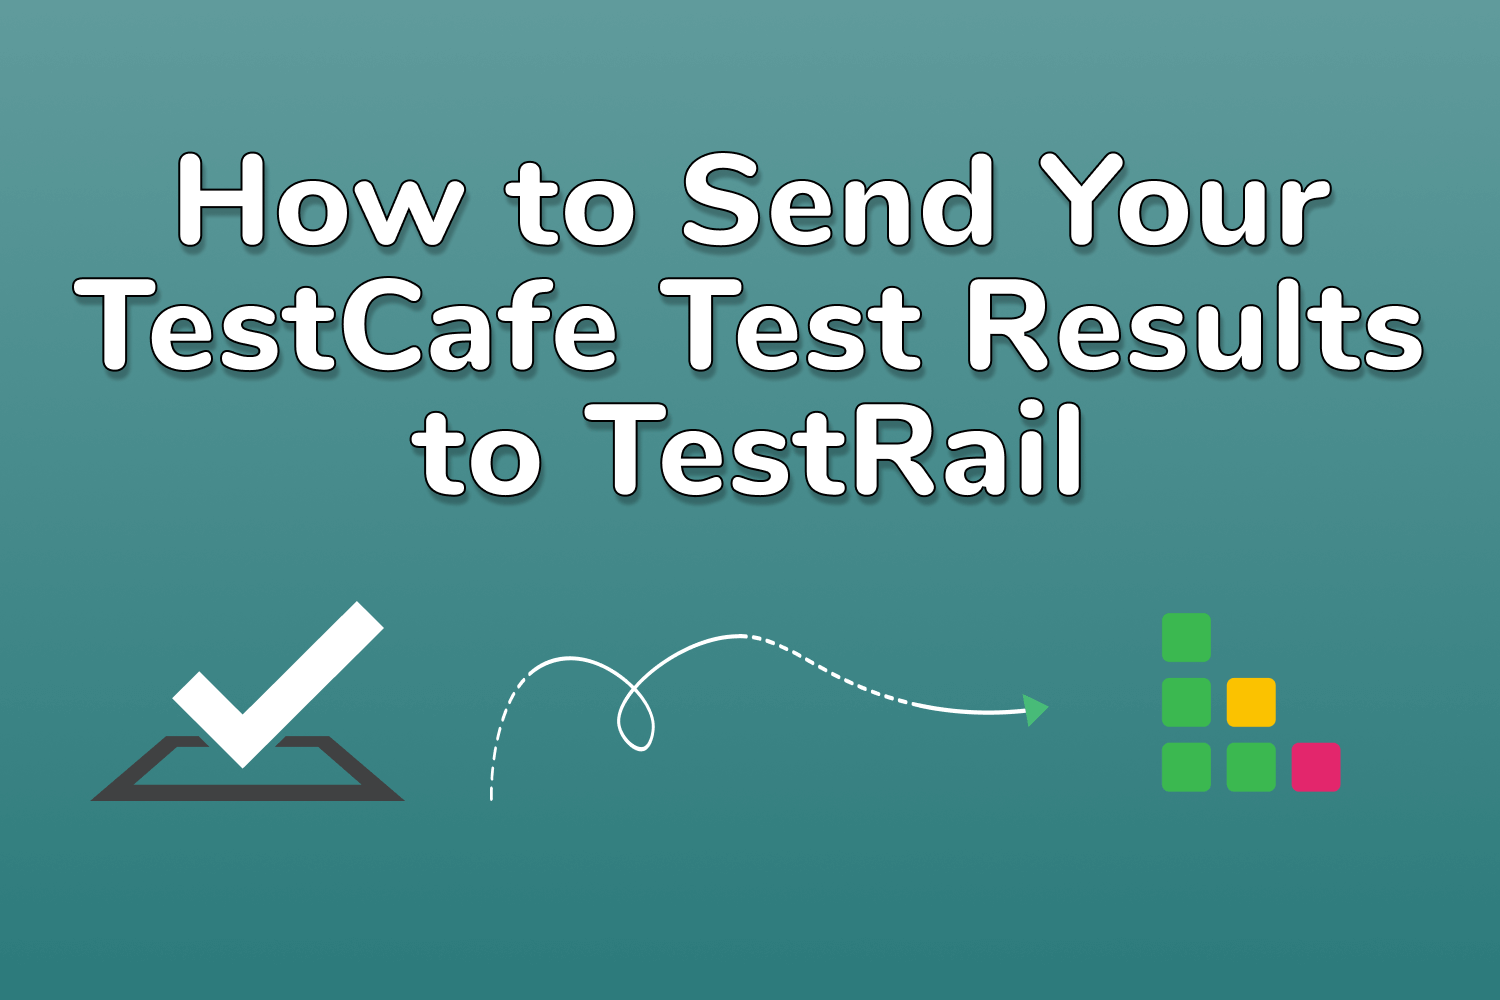 How to Send Your TestCafe Test Results to TestRail